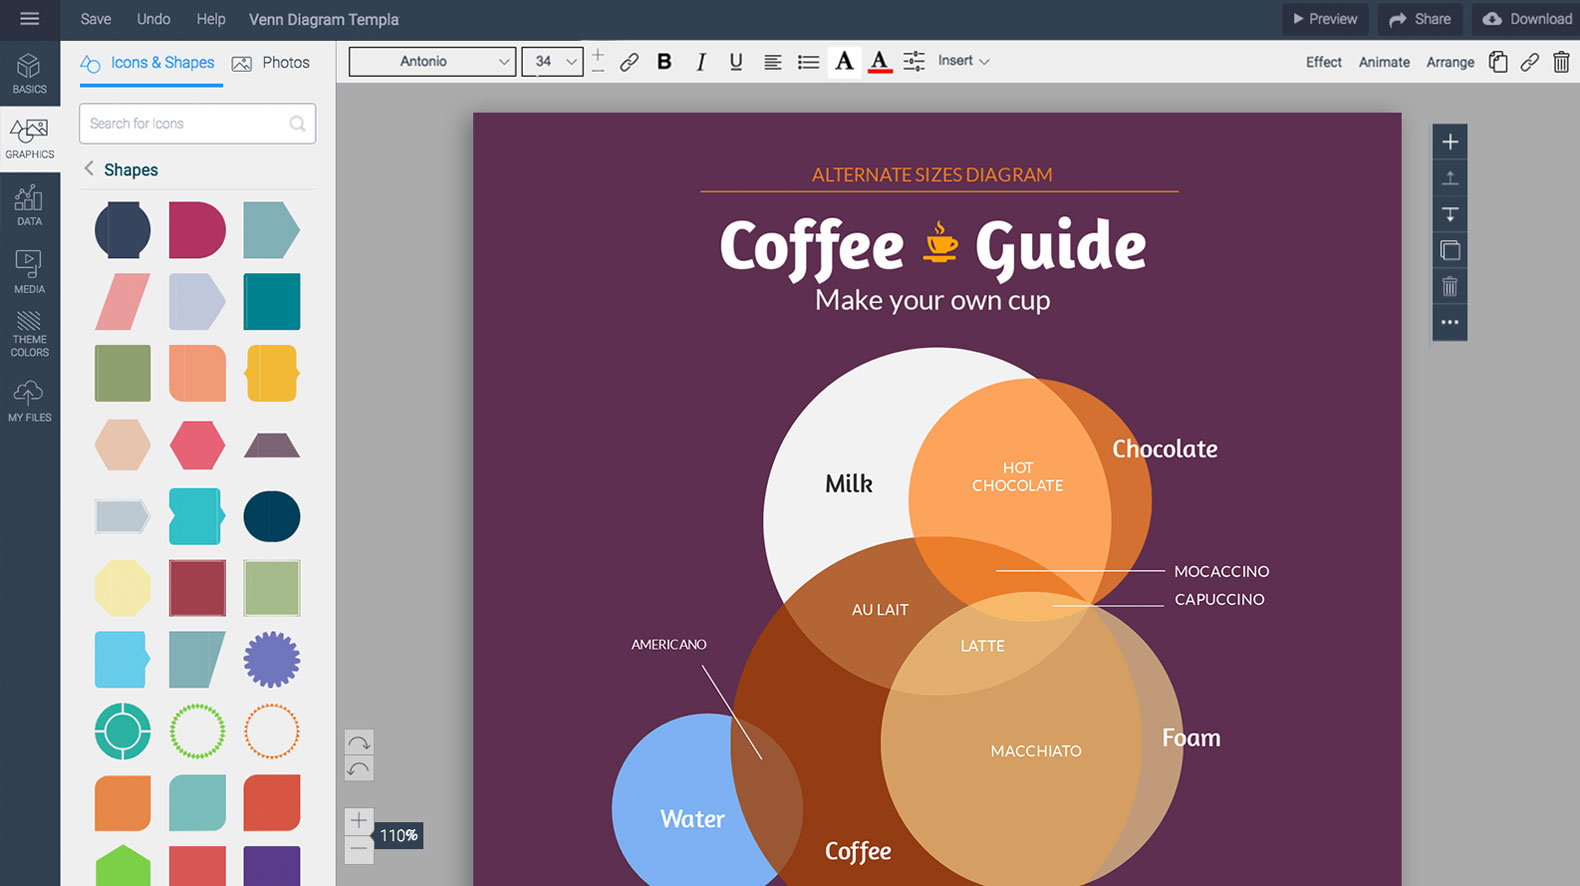 Venn Diagram Maker.Free Venn Diagram Maker Venn Diagram Generator Visme